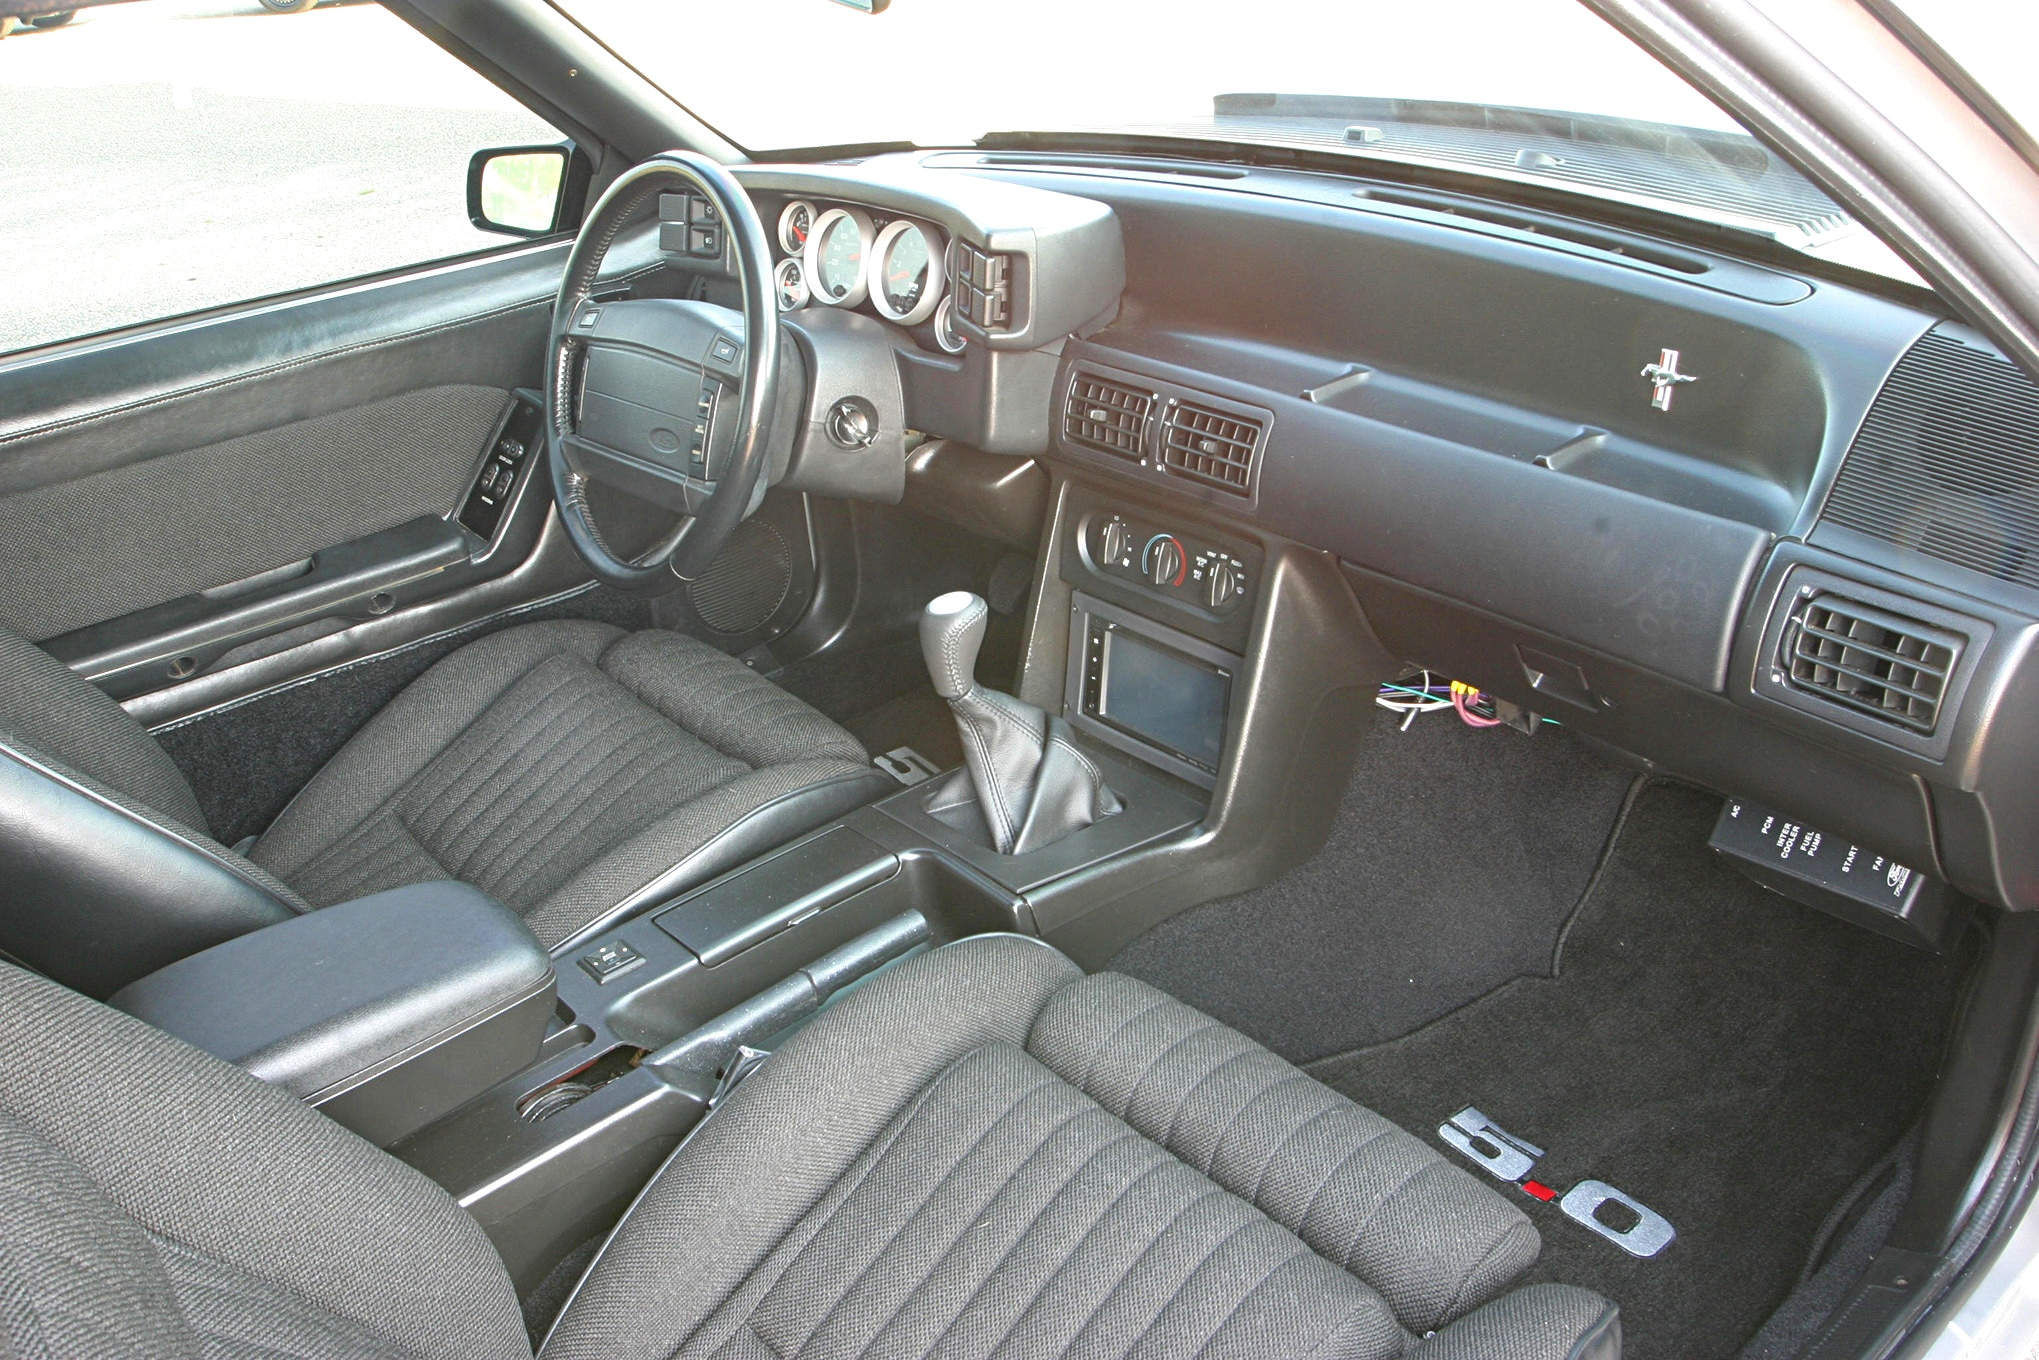 1991 Ford Mustang Lx Fox Body Interior Passenger Side